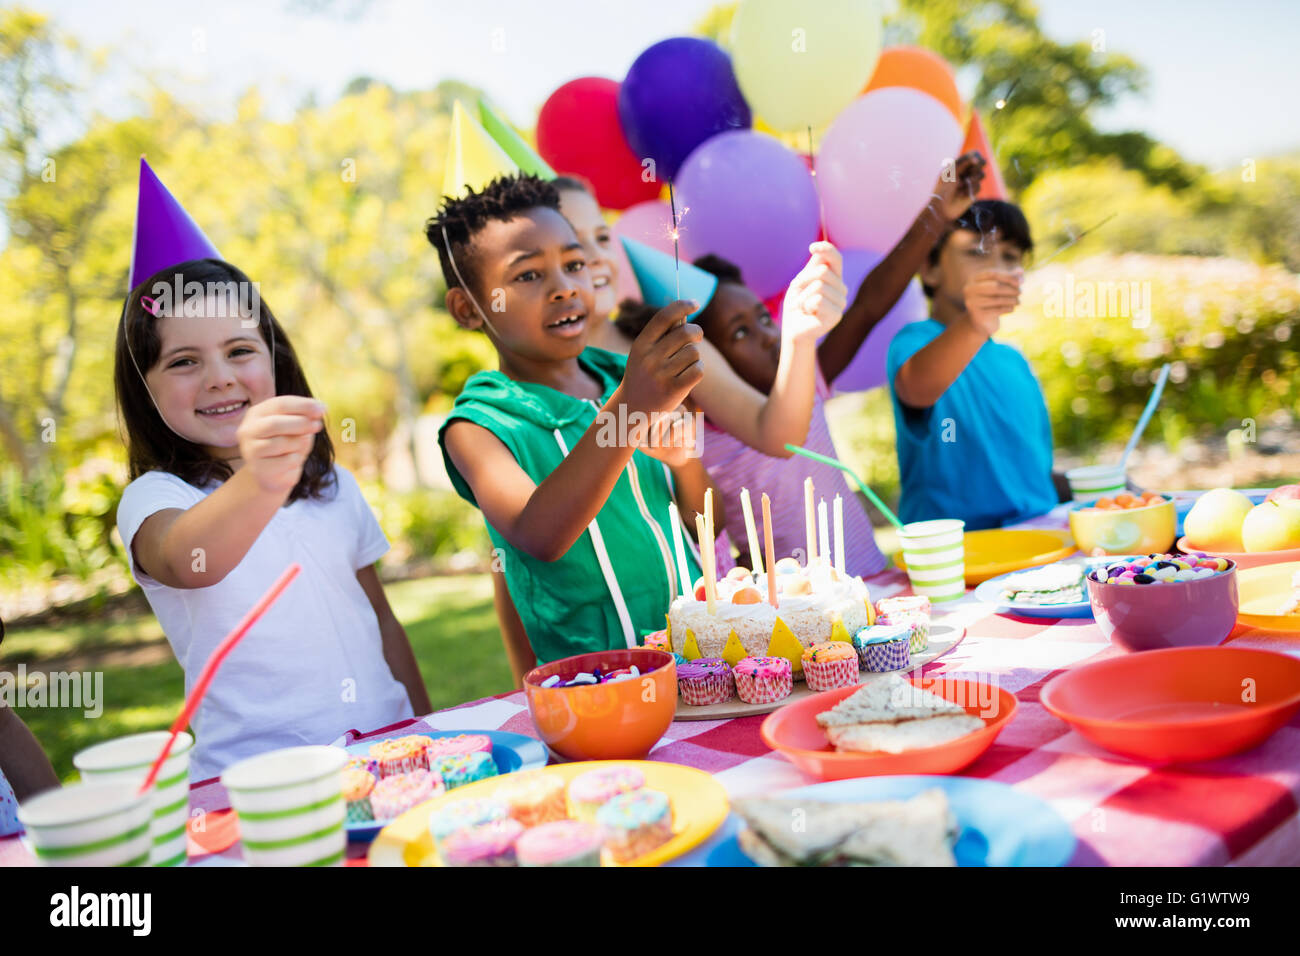 Cute children smiling and having fun during a birthday party - Stock Image